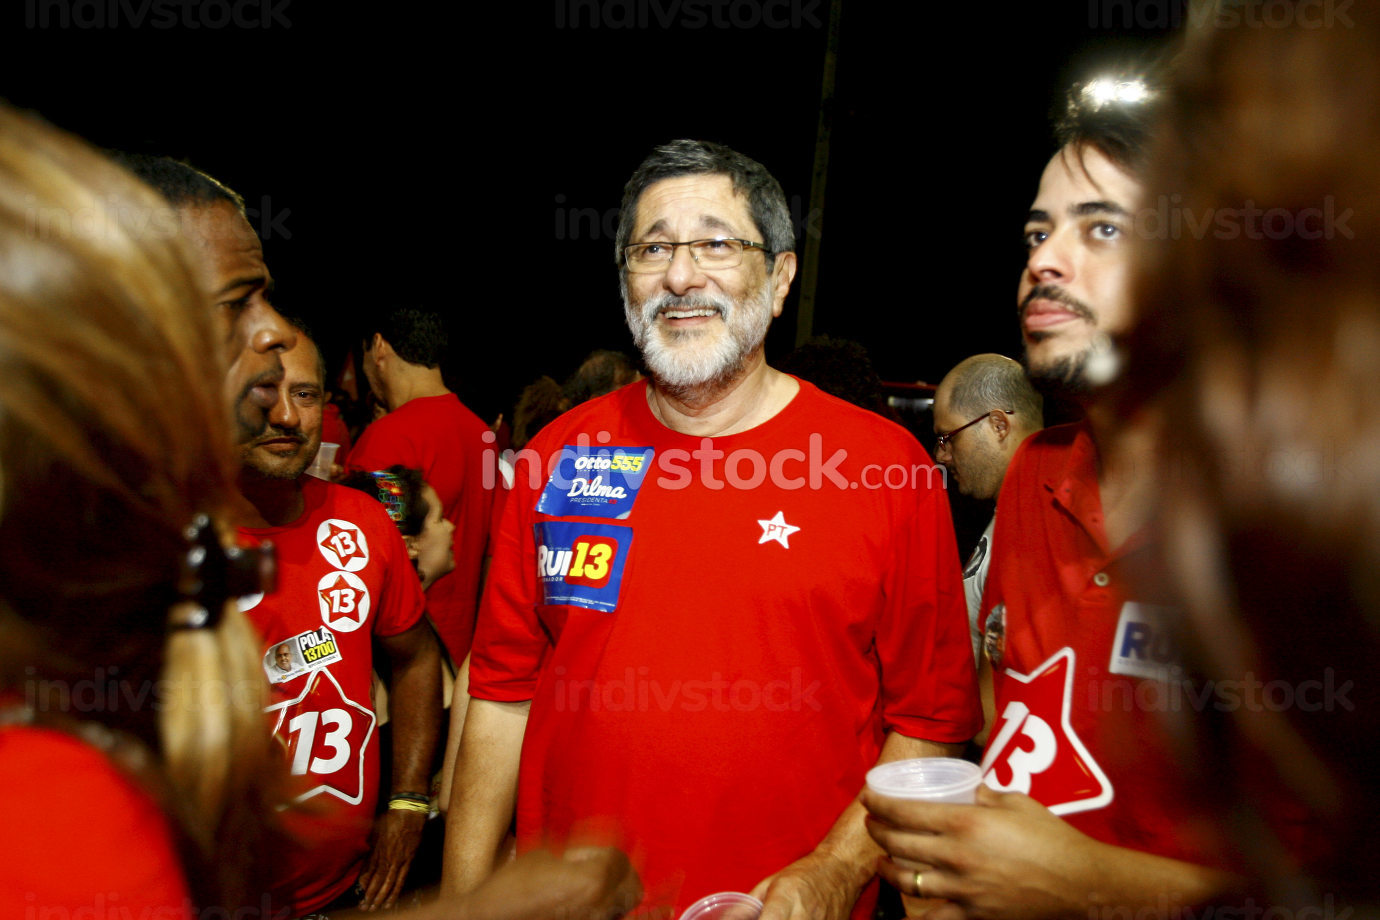 salvador, bahia Brazil, october 5, 2014, Workers Party-PT-militants celebrate in Rio Vermelho neighborhood in Salvador the victory of Rui Costa, elected Governor of Bahia